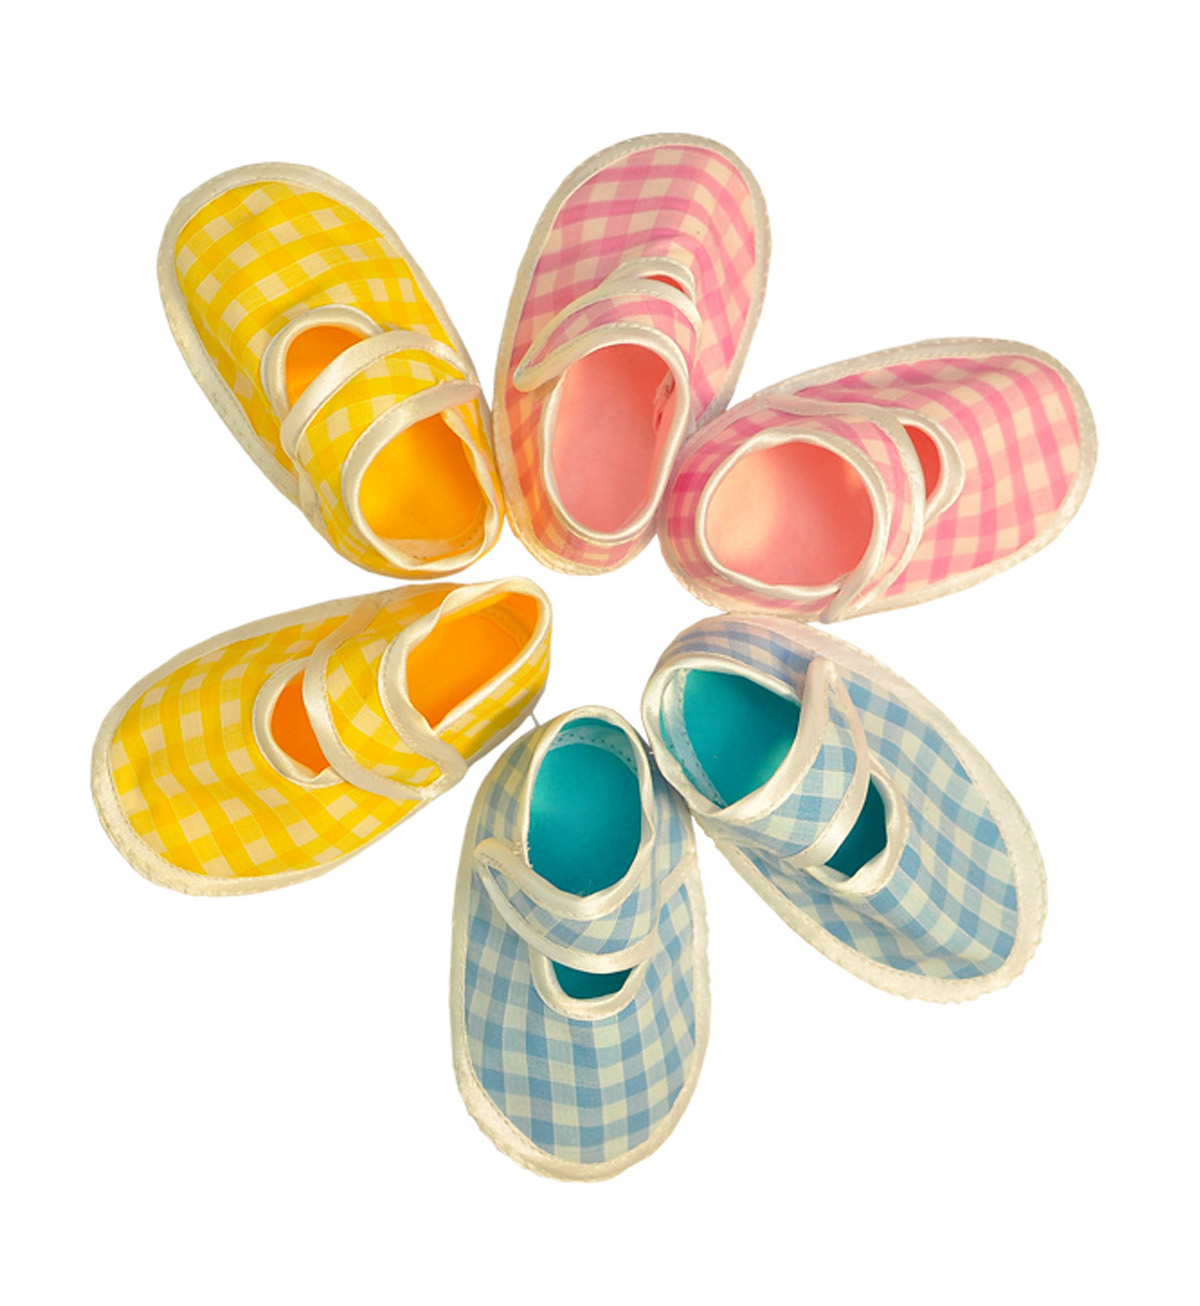 1054 Adorable Baby Shoes 1